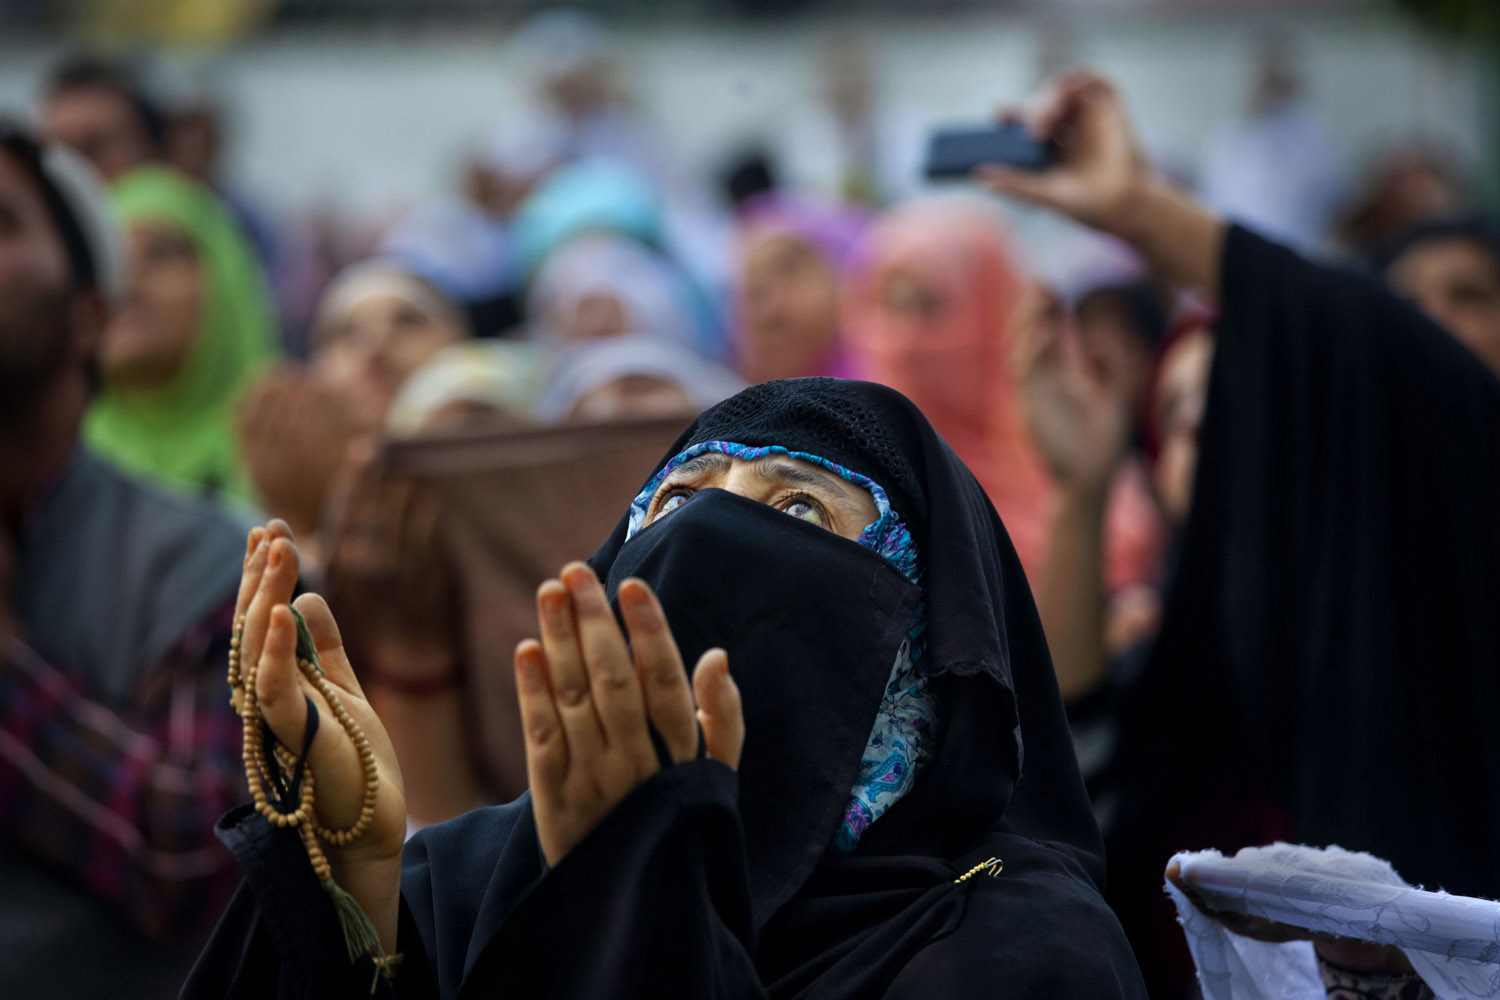 Aug. 10, 2012. A Kashmiri Muslim woman prays during special prayers to observe the Martyr Day of Hazrat Ali, cousin of Prophet Mohammed, on the 21st day of Ramadan in Srinagar, India.